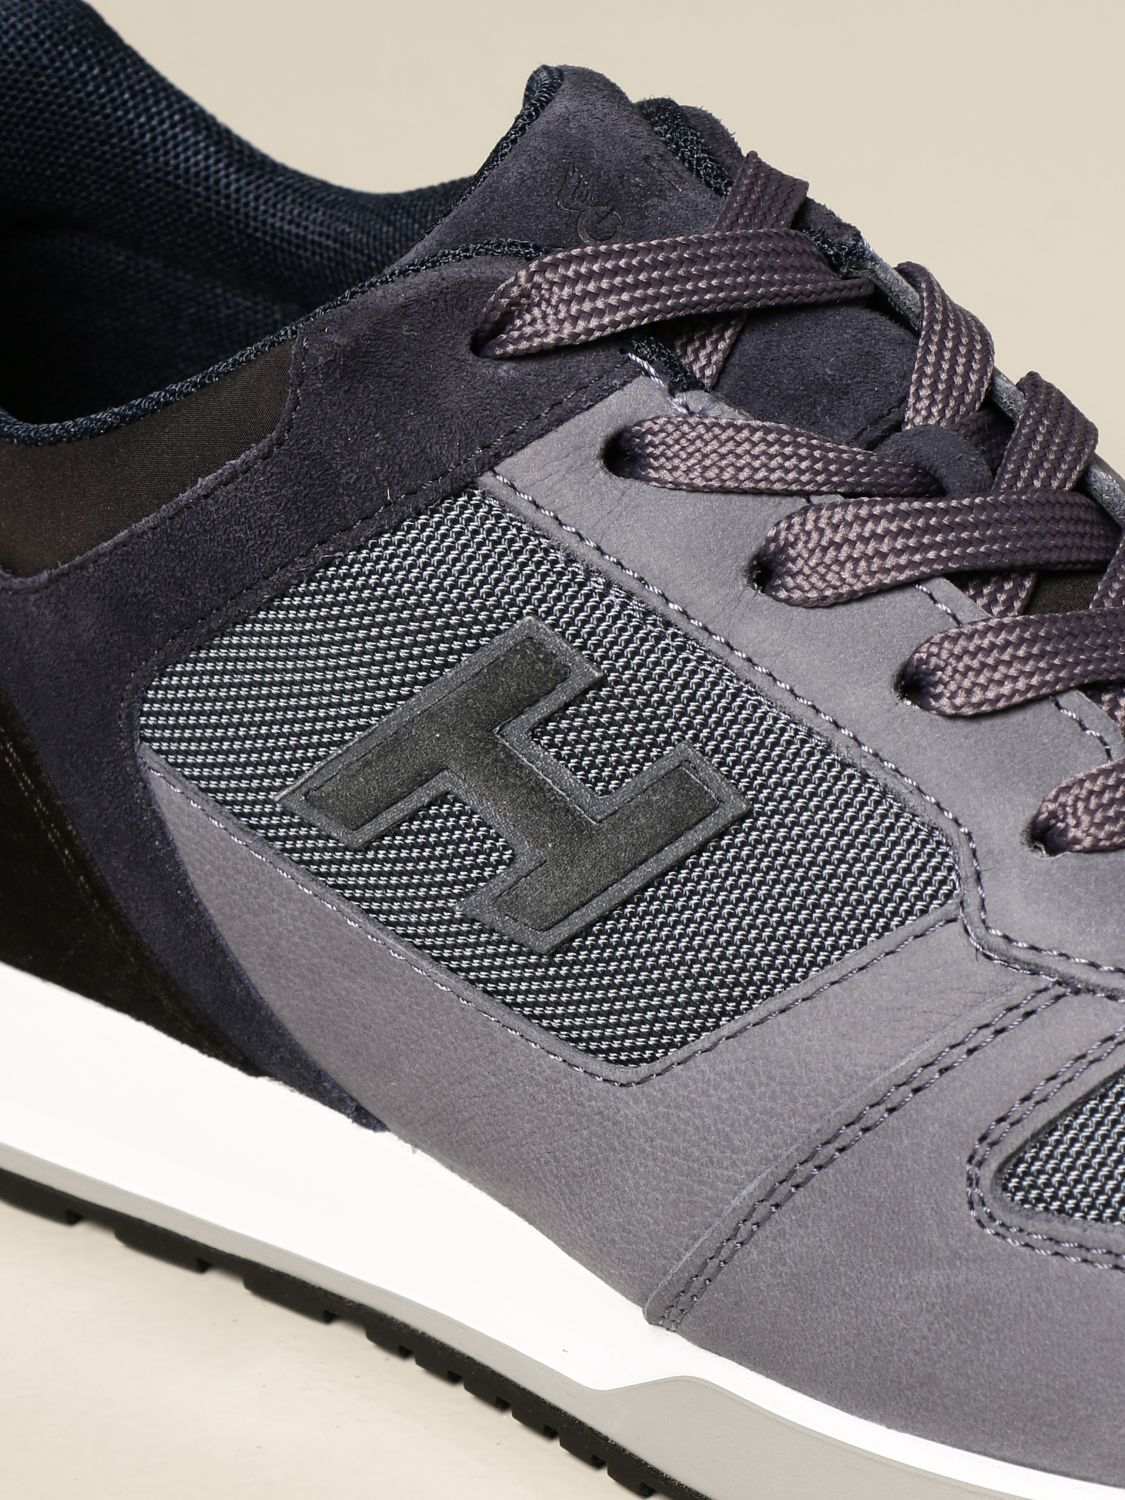 H321 Hogan sneakers in suede and nubuck with H flock